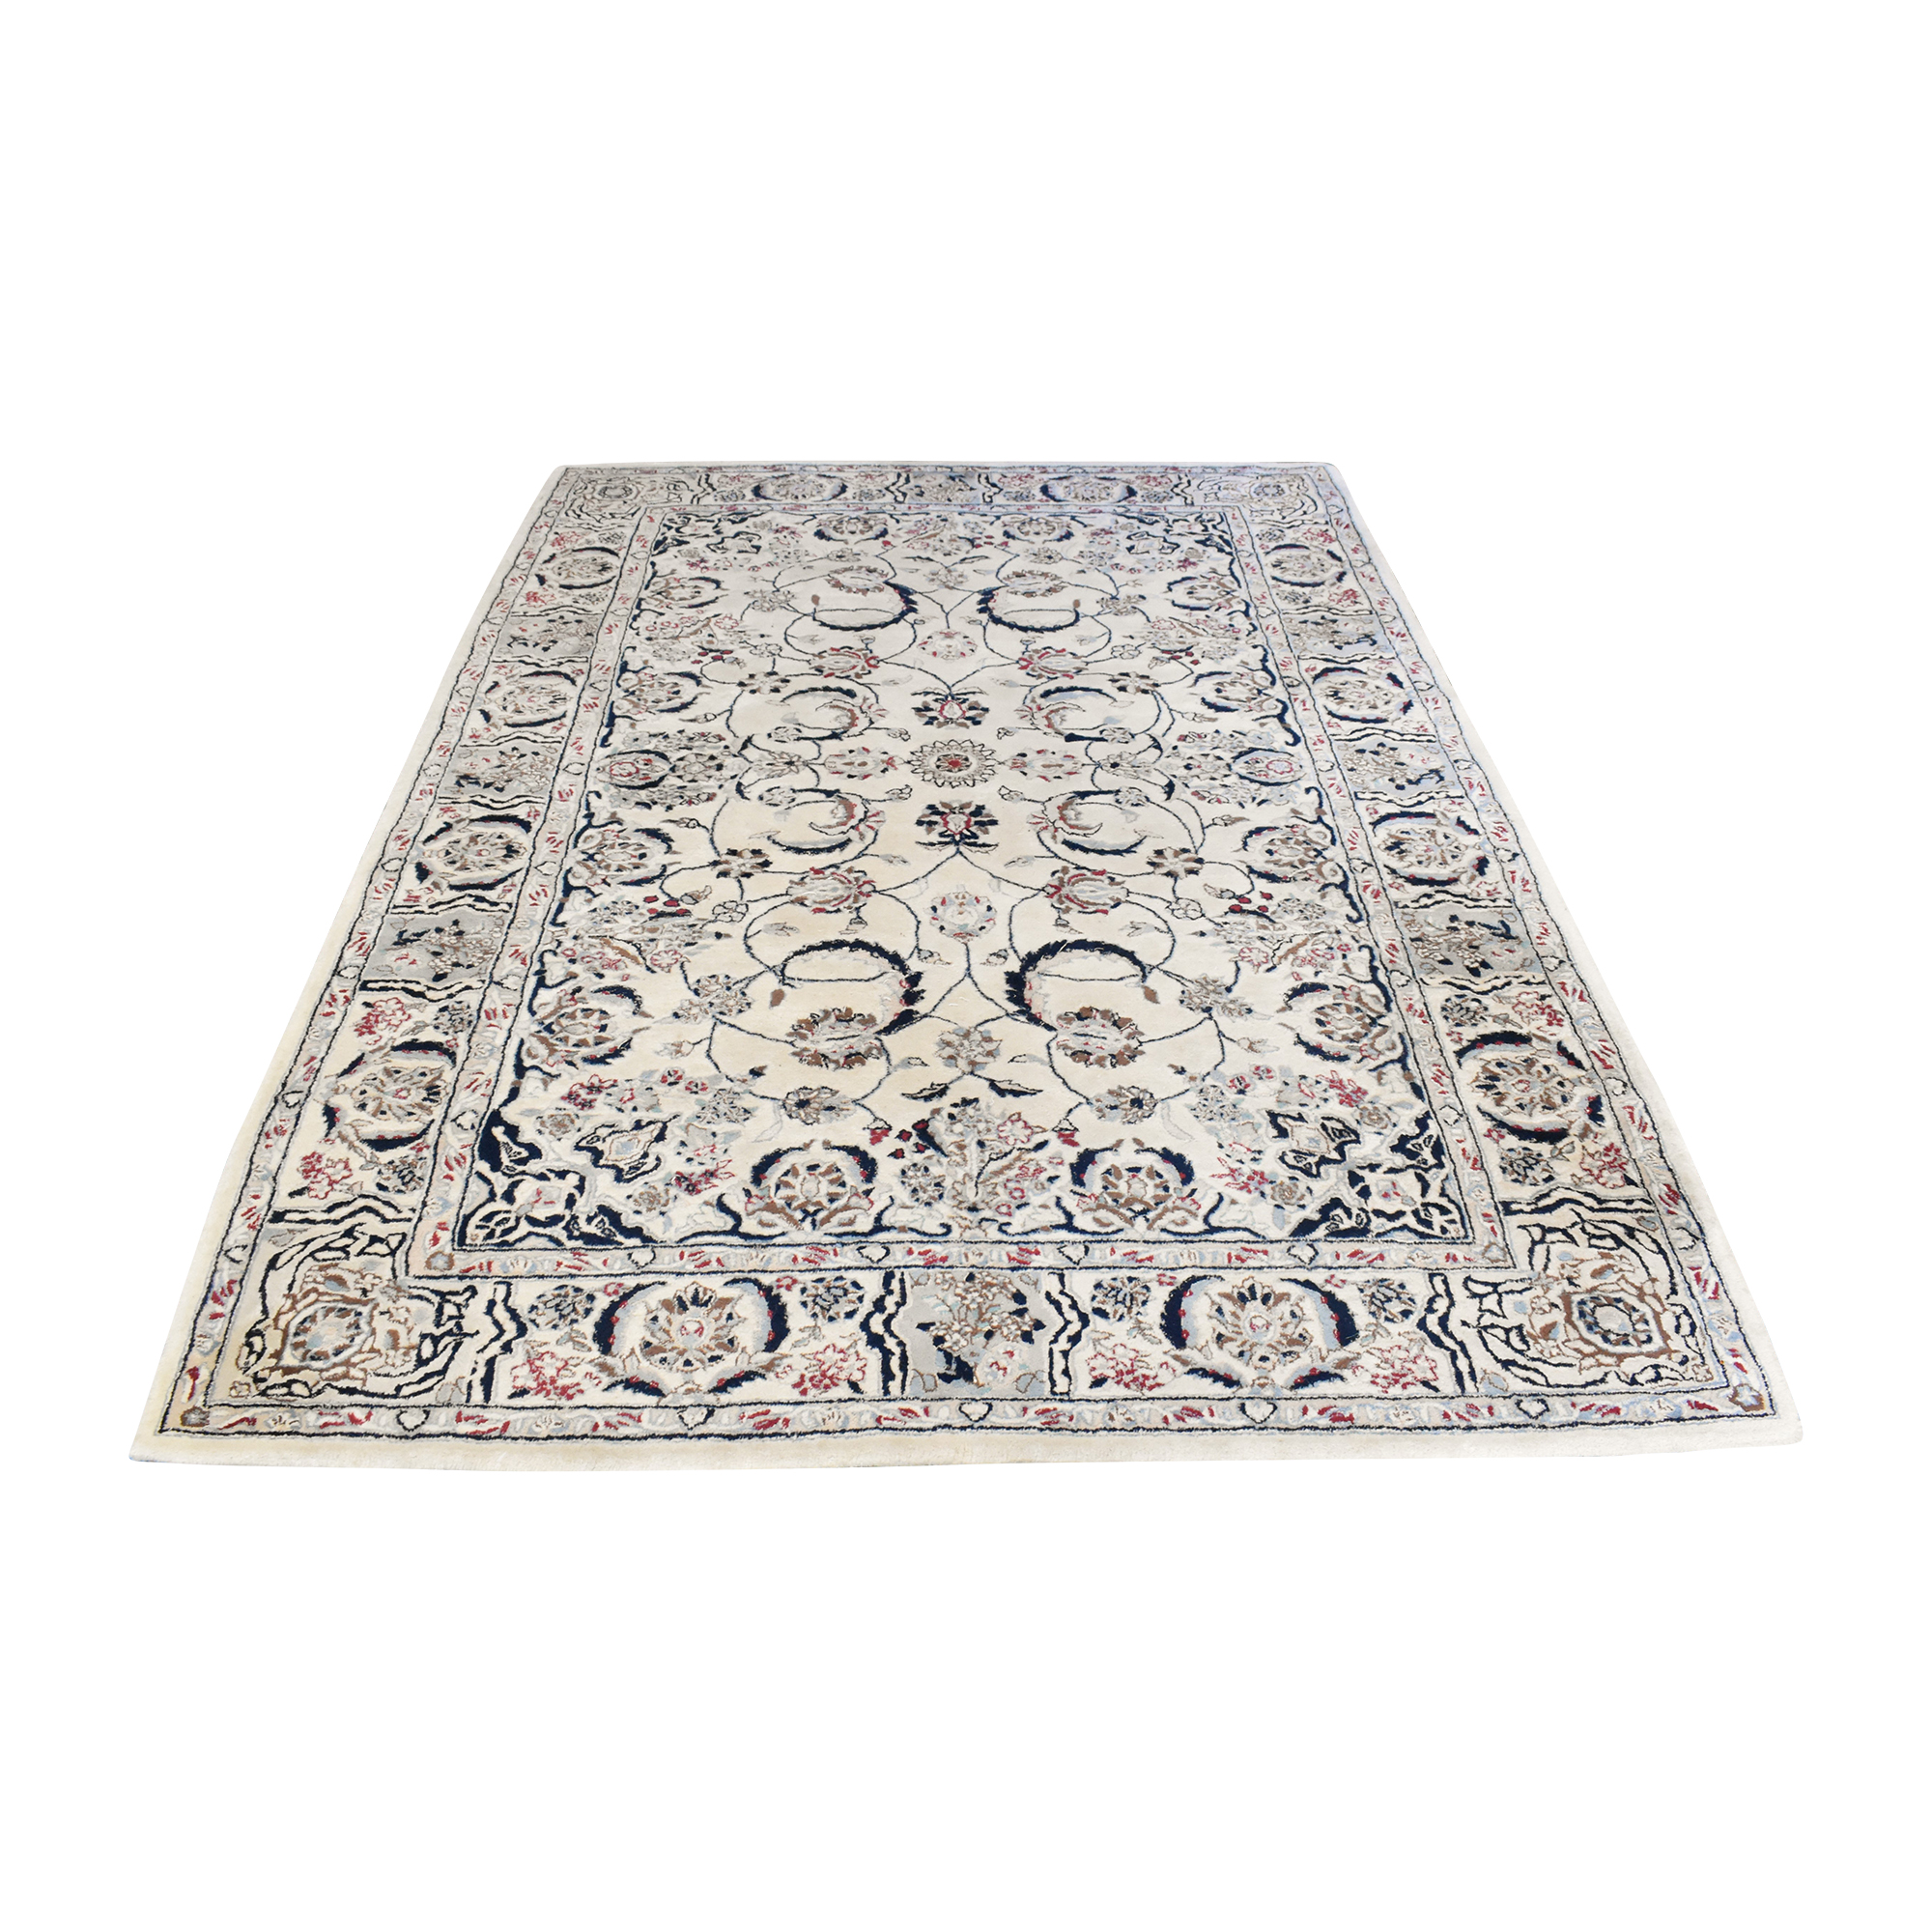 Patterned Area Rug / Rugs